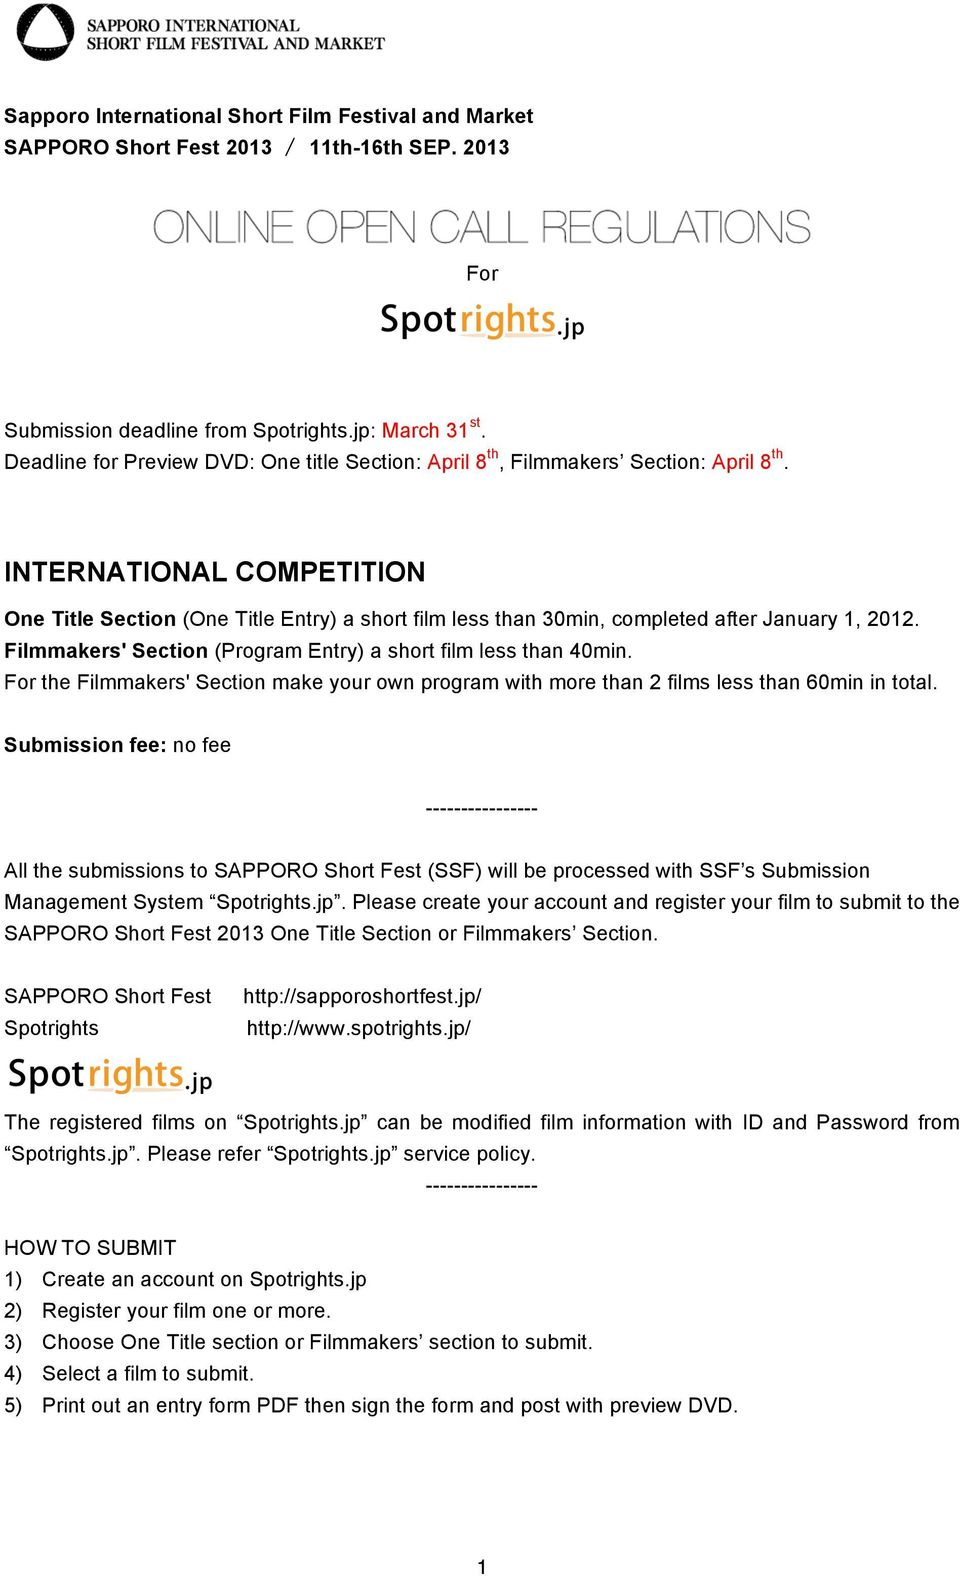 INTERNATIONAL COMPETITION One Title Section (One Title Entry) a short film less than 30min, completed after January 1, 2012. Filmmakers' Section (Program Entry) a short film less than 40min.